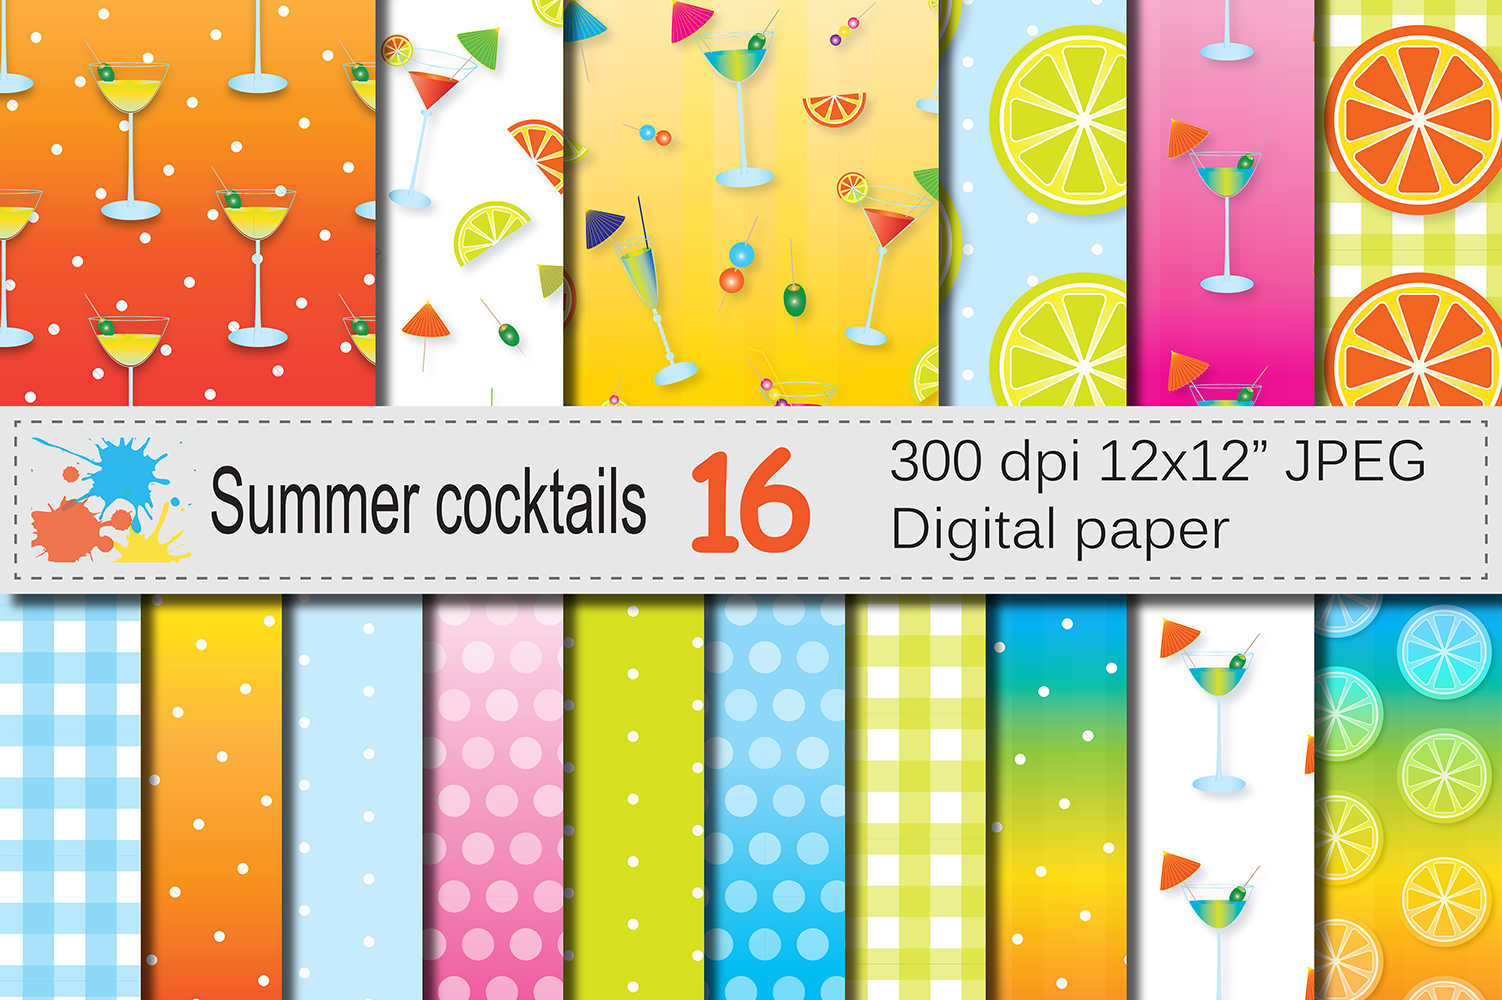 Download Free Summer Cocktails Digital Papers Graphic By Vr Digital Design for Cricut Explore, Silhouette and other cutting machines.